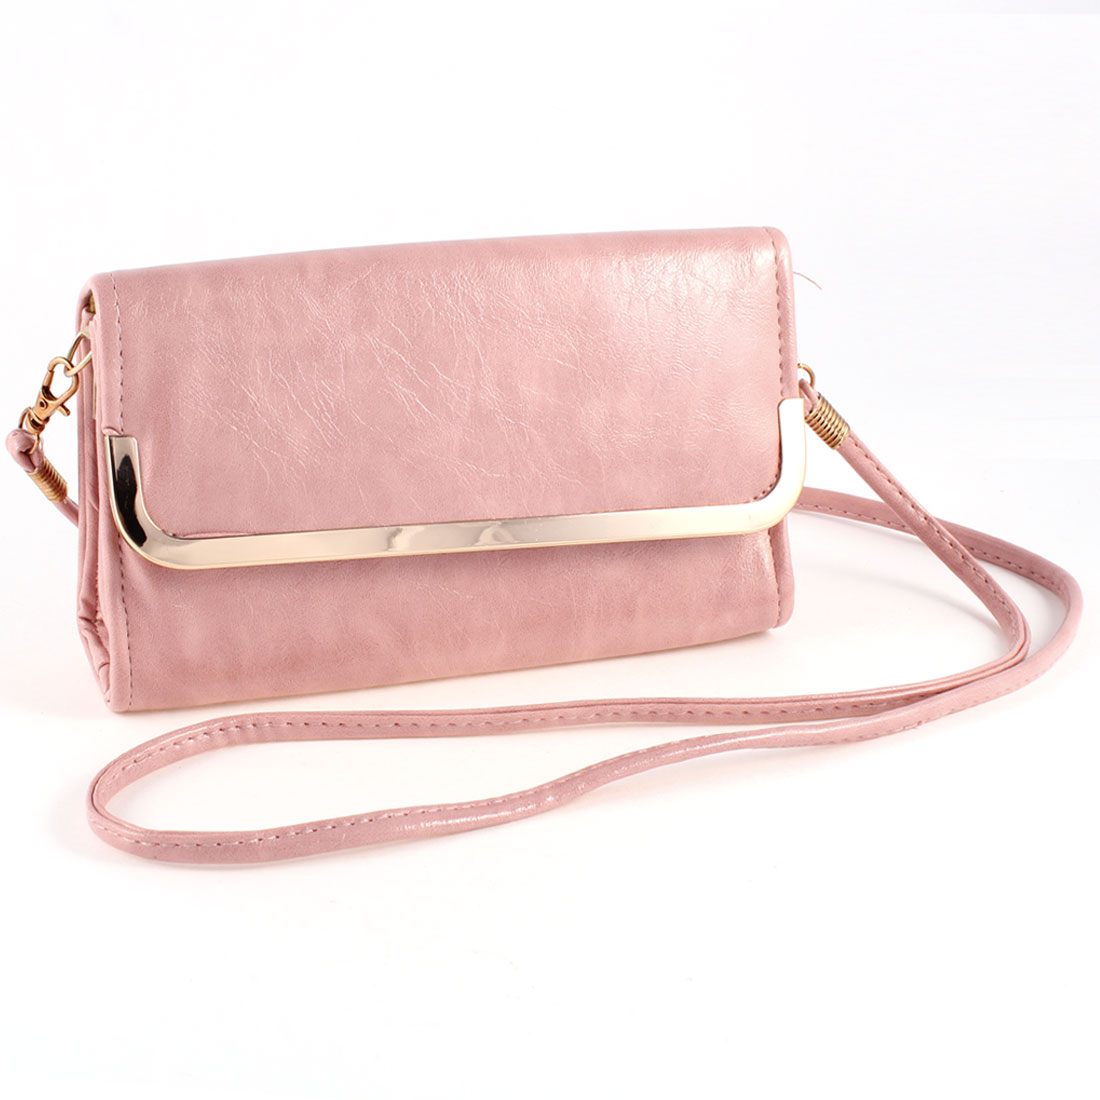 Lady Nylon Lining Zippered Magnetic Flap Closure Handbag Shoulderbag Pale Pink